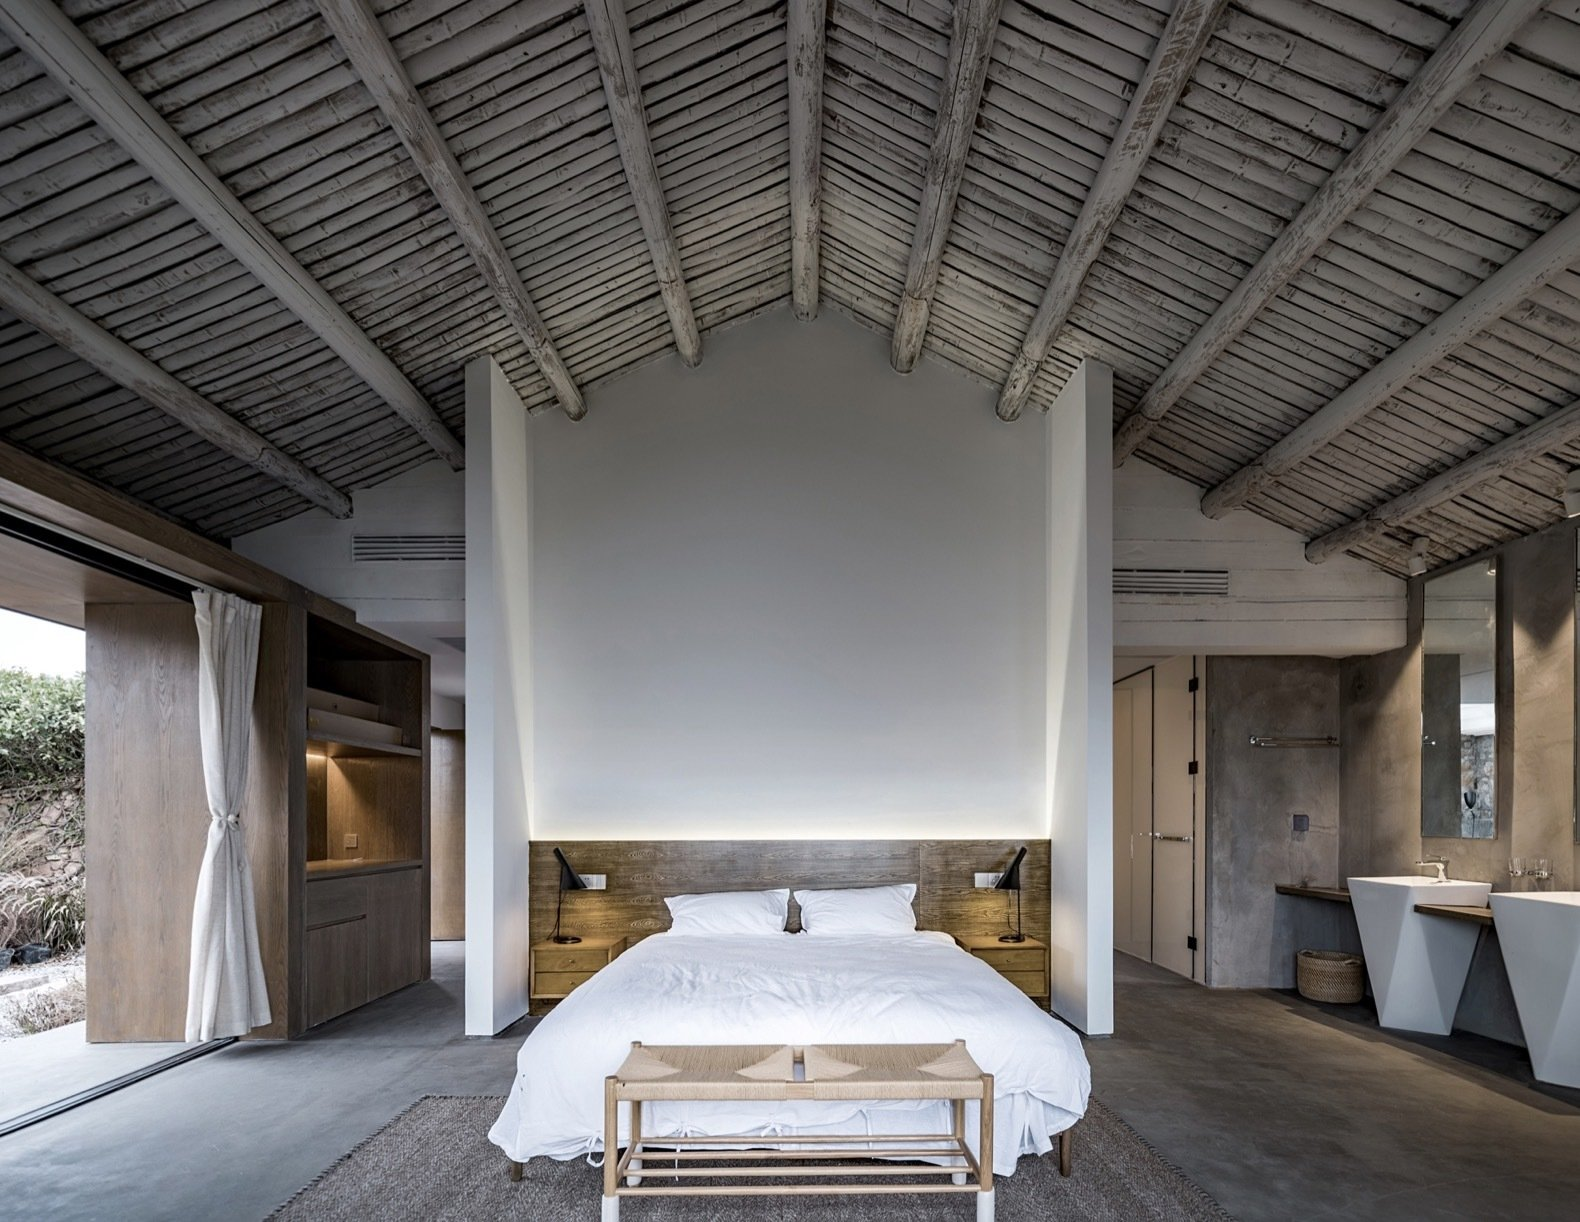 Bedroom, Concrete, Bed, Table, Night Stands, Storage, Rug, and Bench A timber beamed ceiling adds a rustic touch to the modern master suite.   Best Bedroom Bed Rug Concrete Bench Photos from In Just 31 Days, These Historic Chinese Ruins Were Transformed Into a Chic B&B